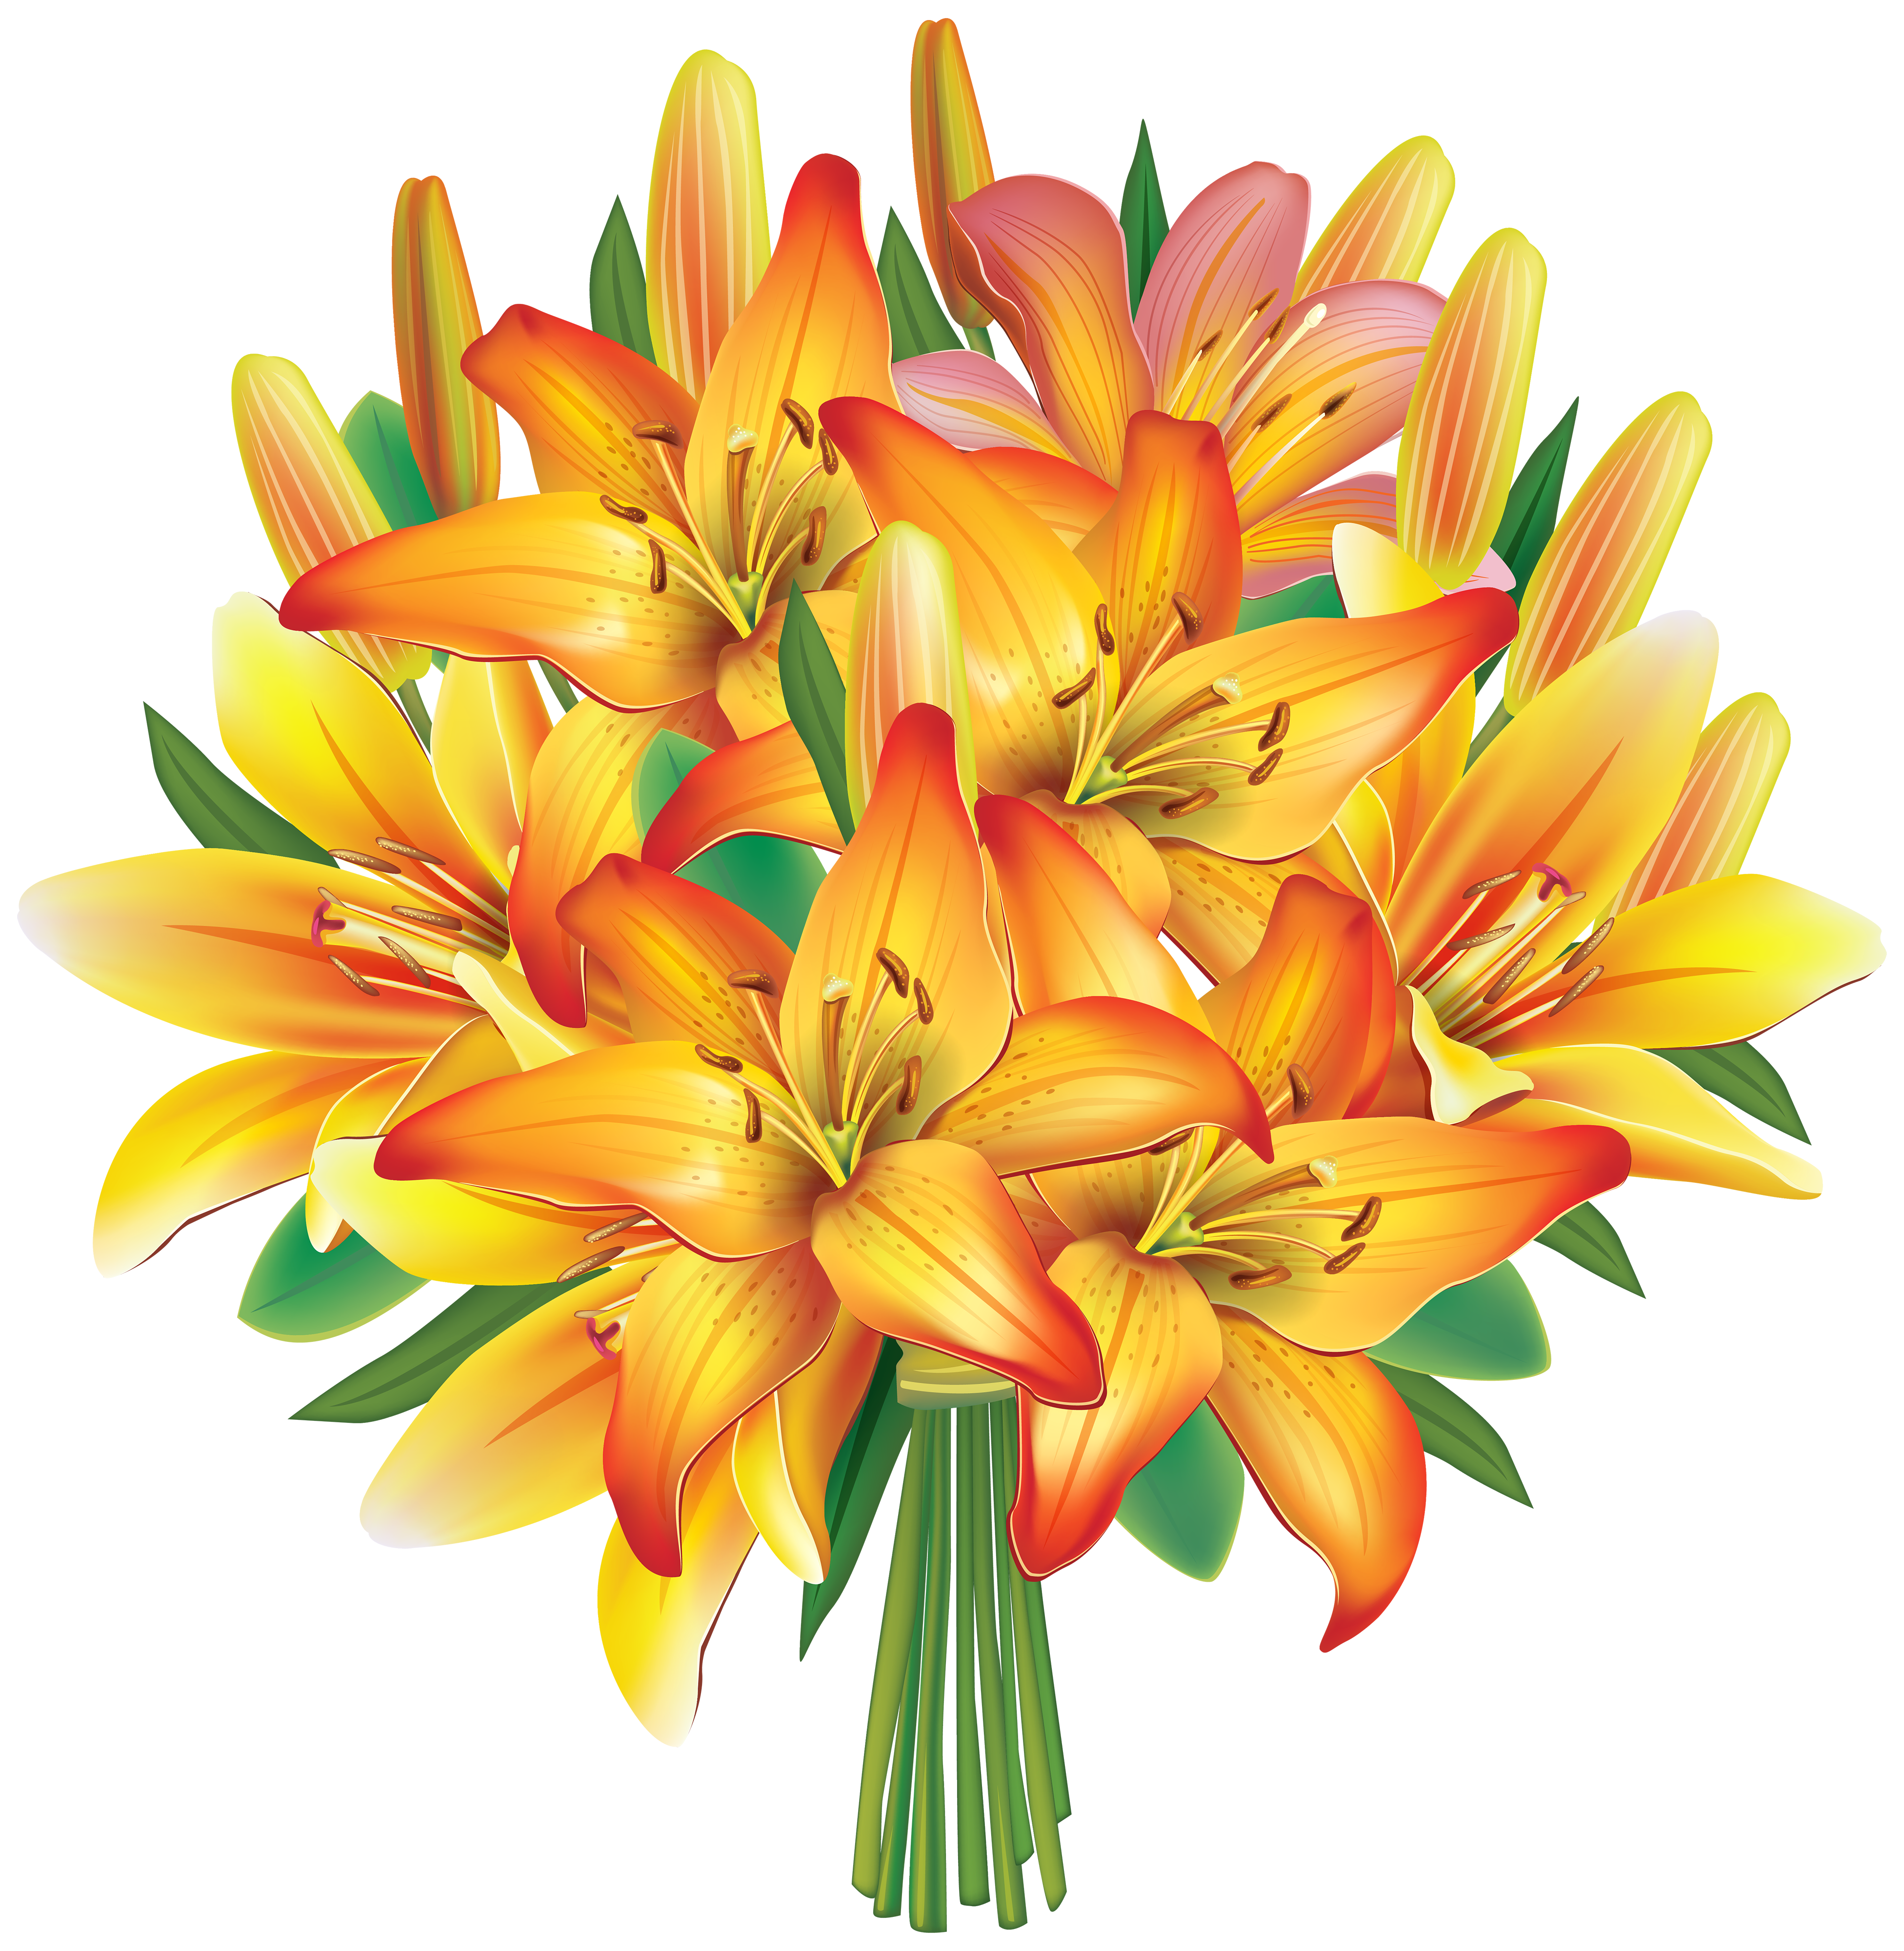 Bouquet of yellow roses png. Lilies flowers clipart image